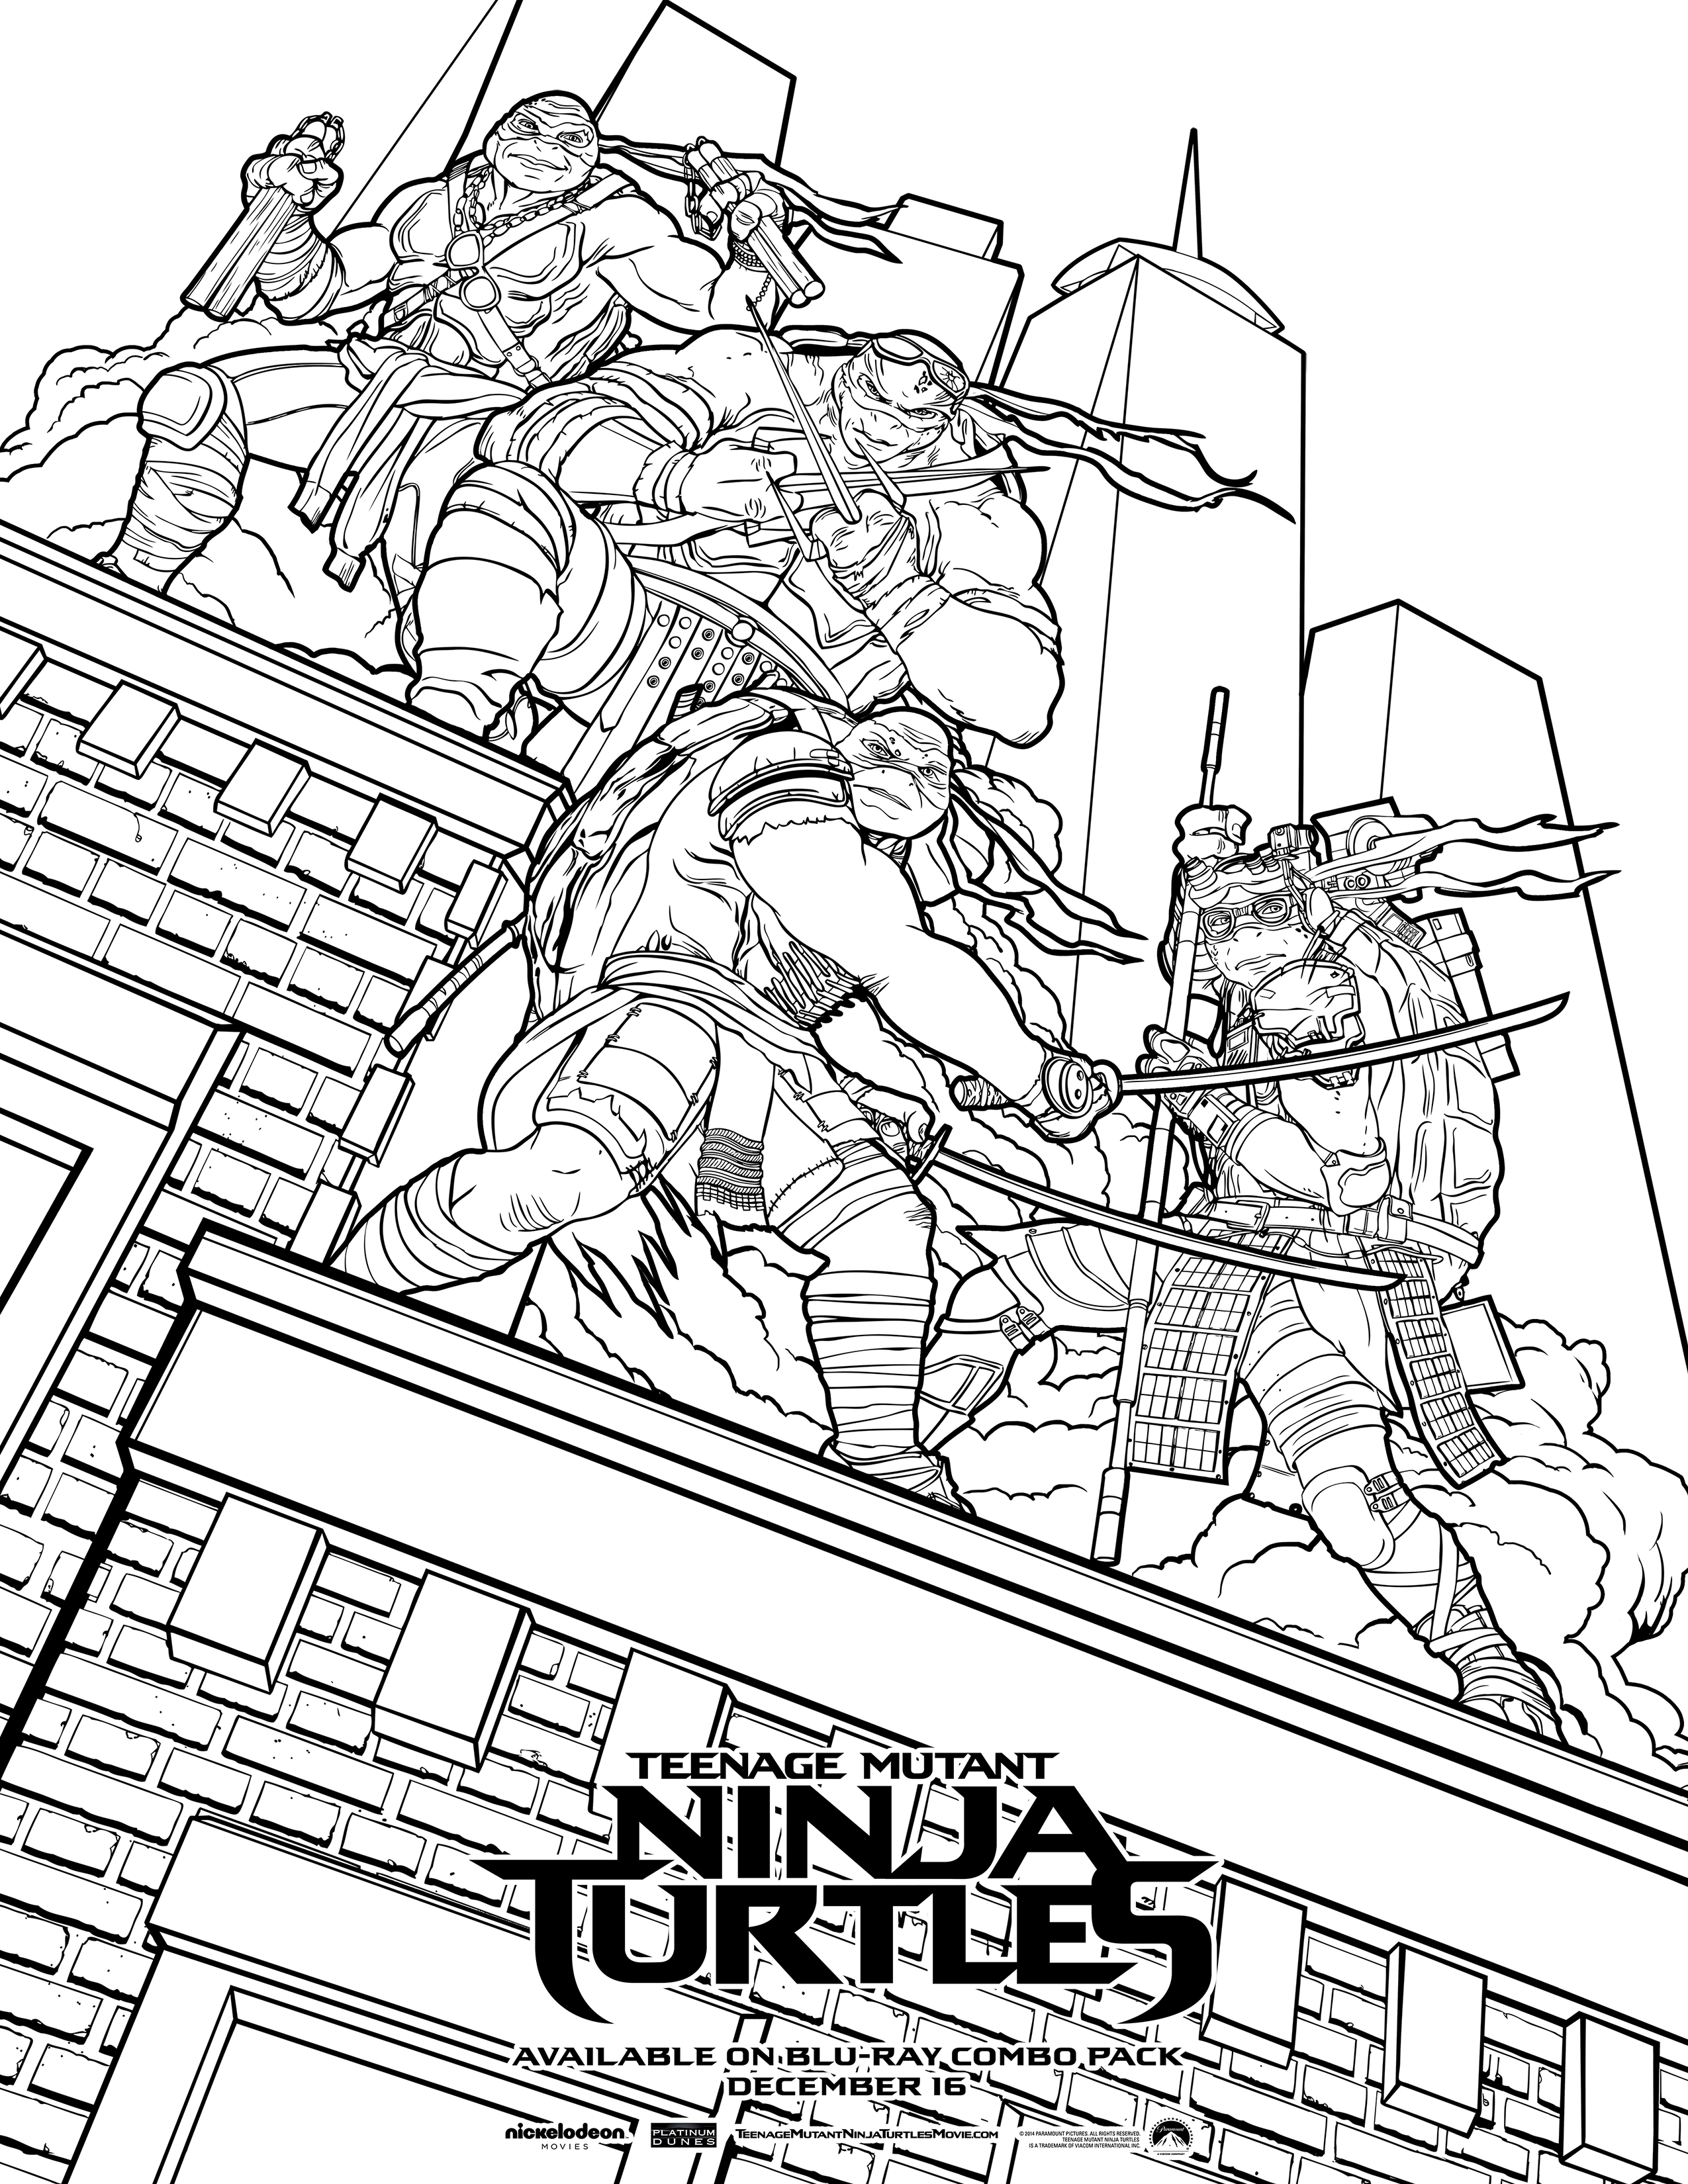 click here to download a free tmnt coloring sheet